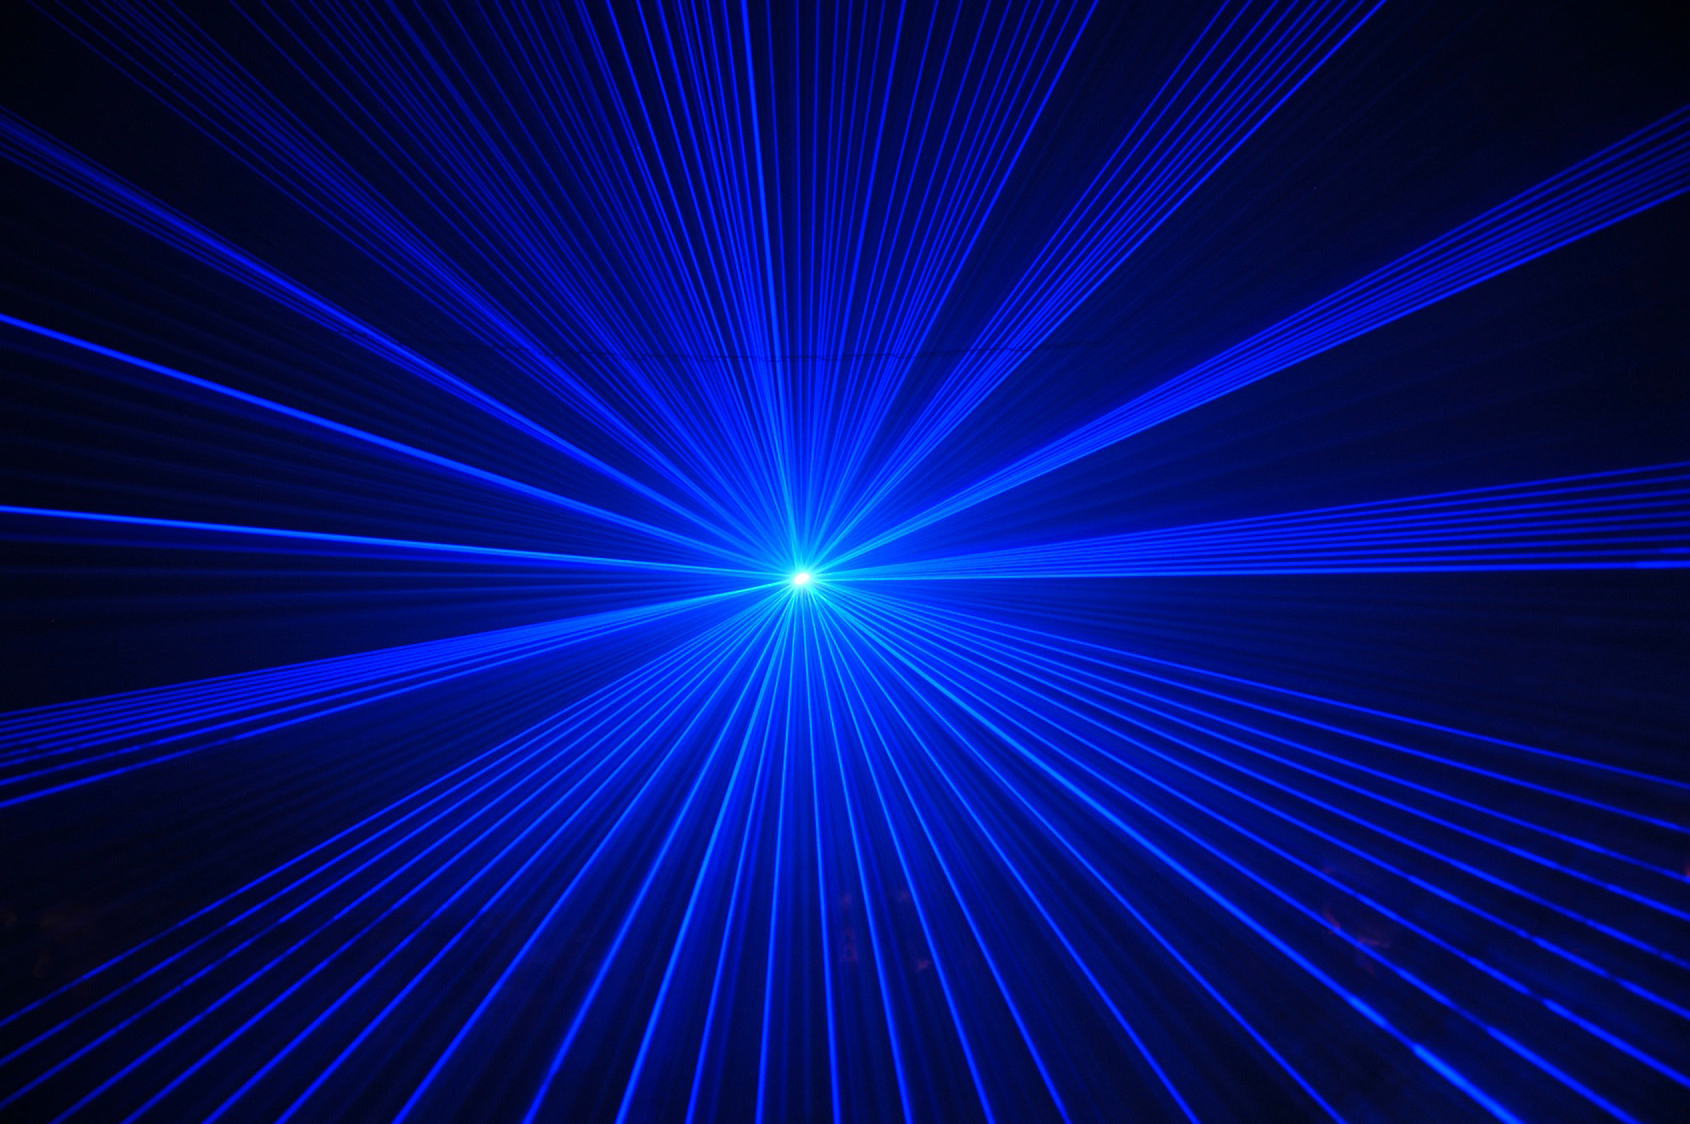 Blue Laser Wallpaper 3719.37 Kb